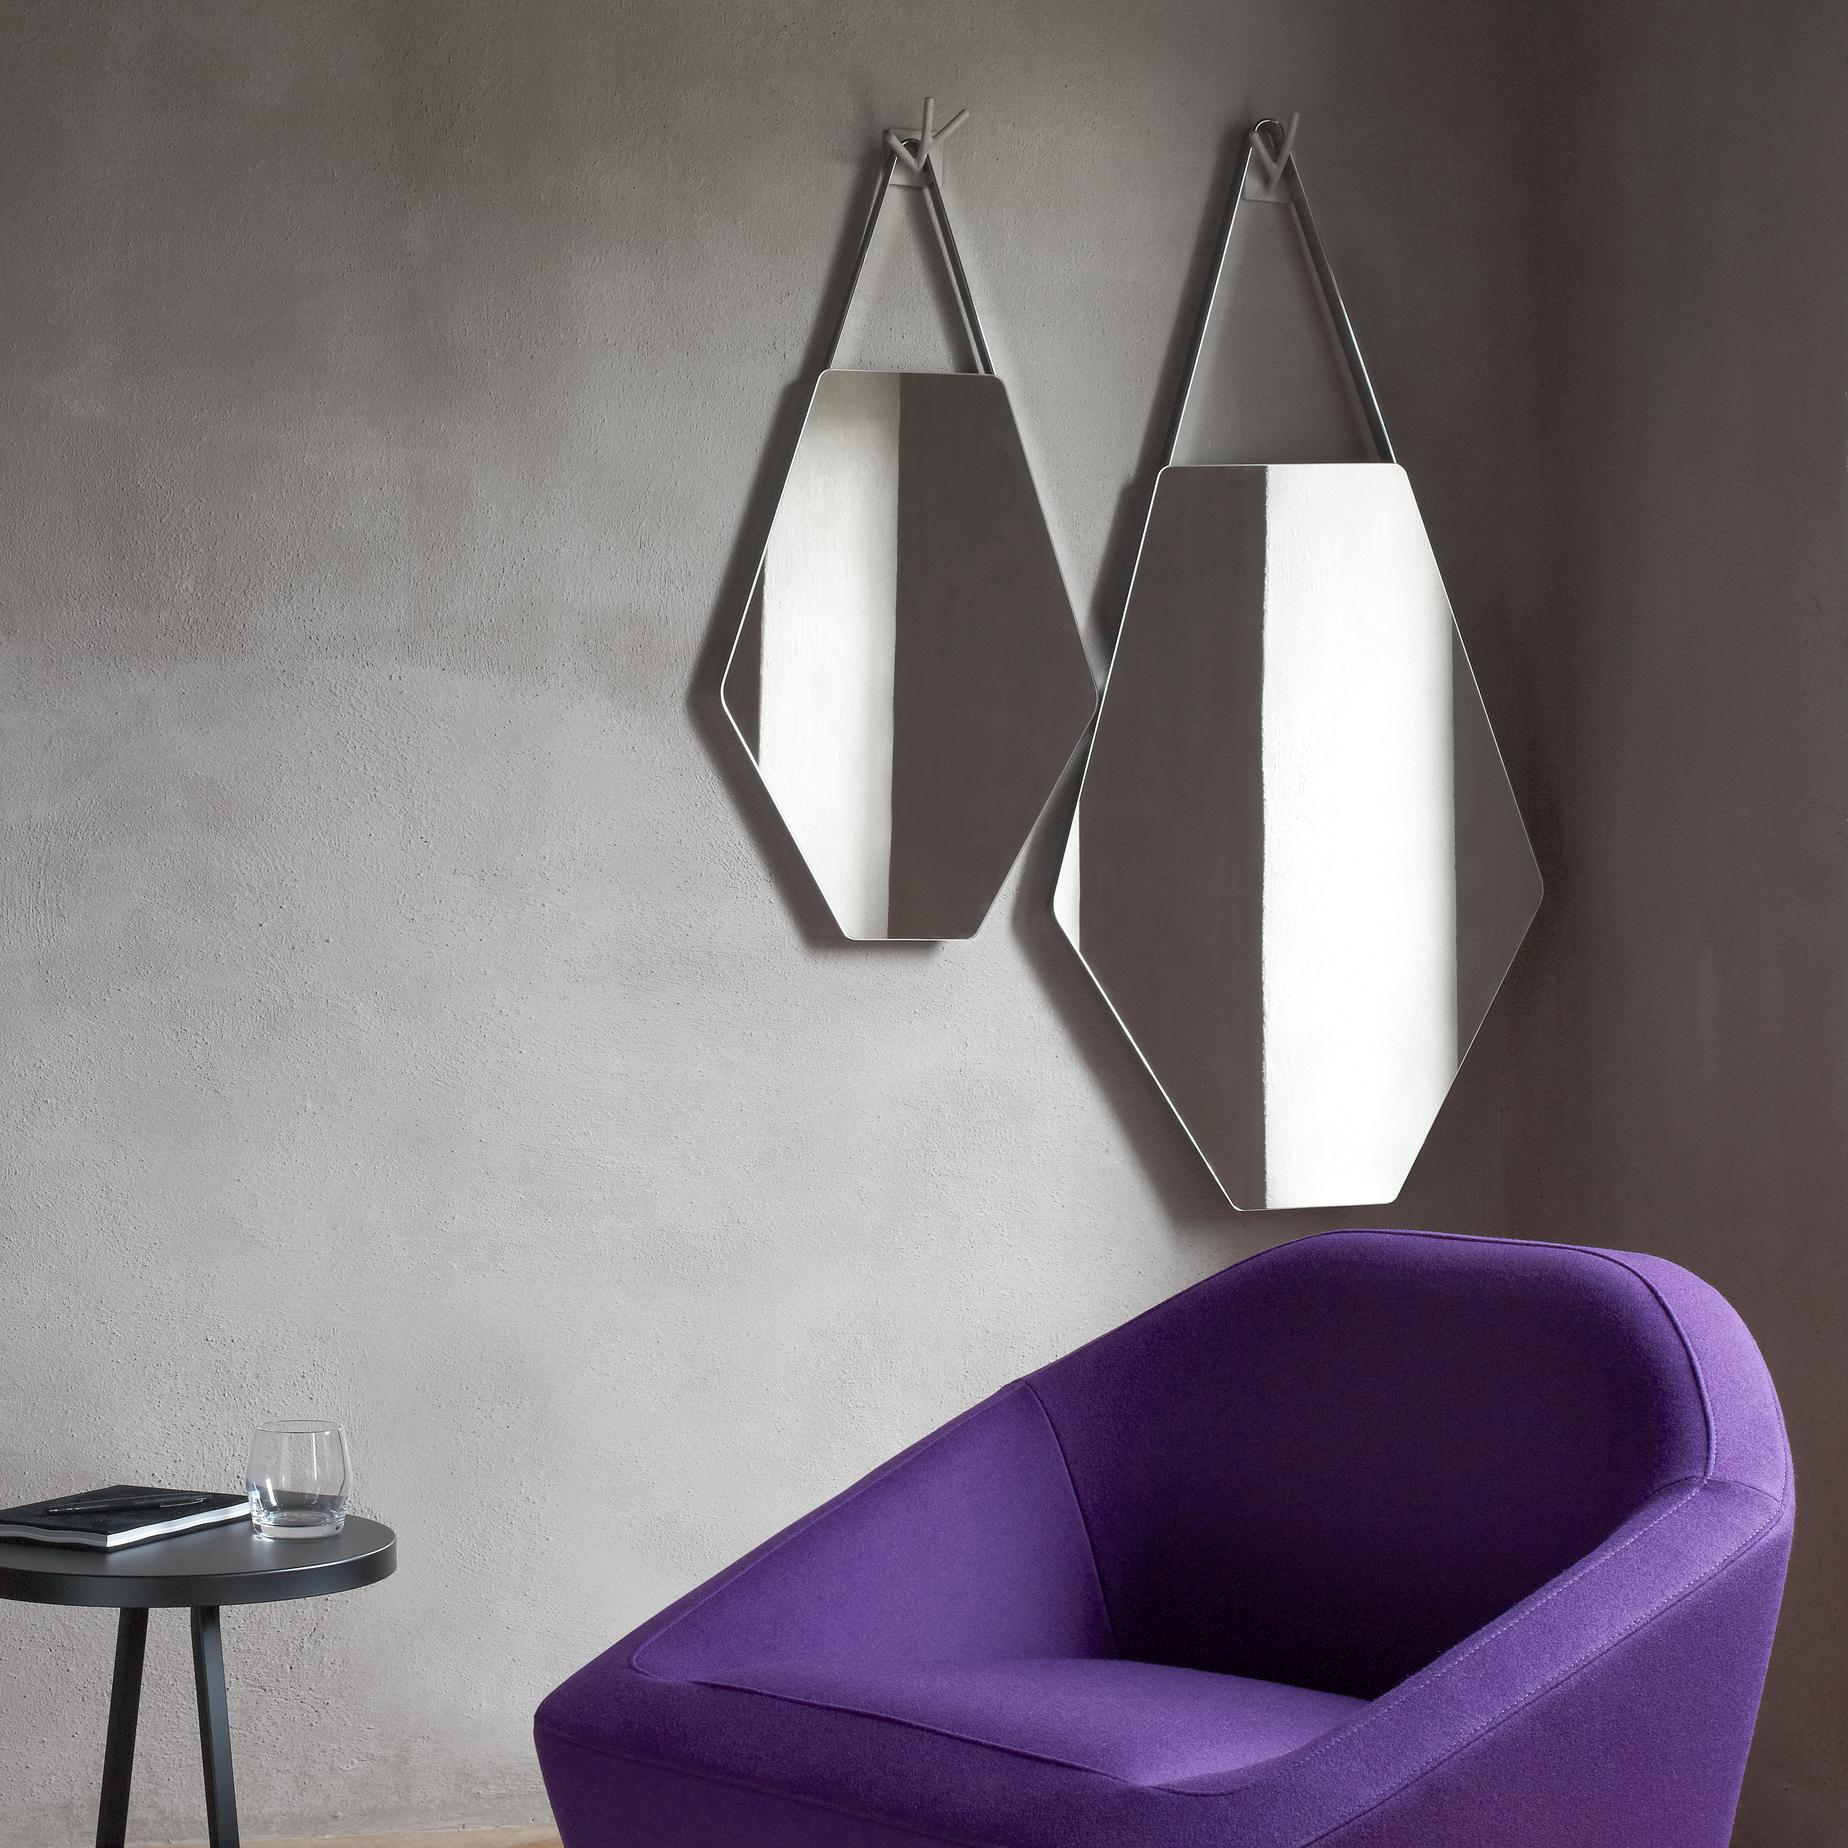 Mirror Mon Beau Miroir Entry From Designer Michael